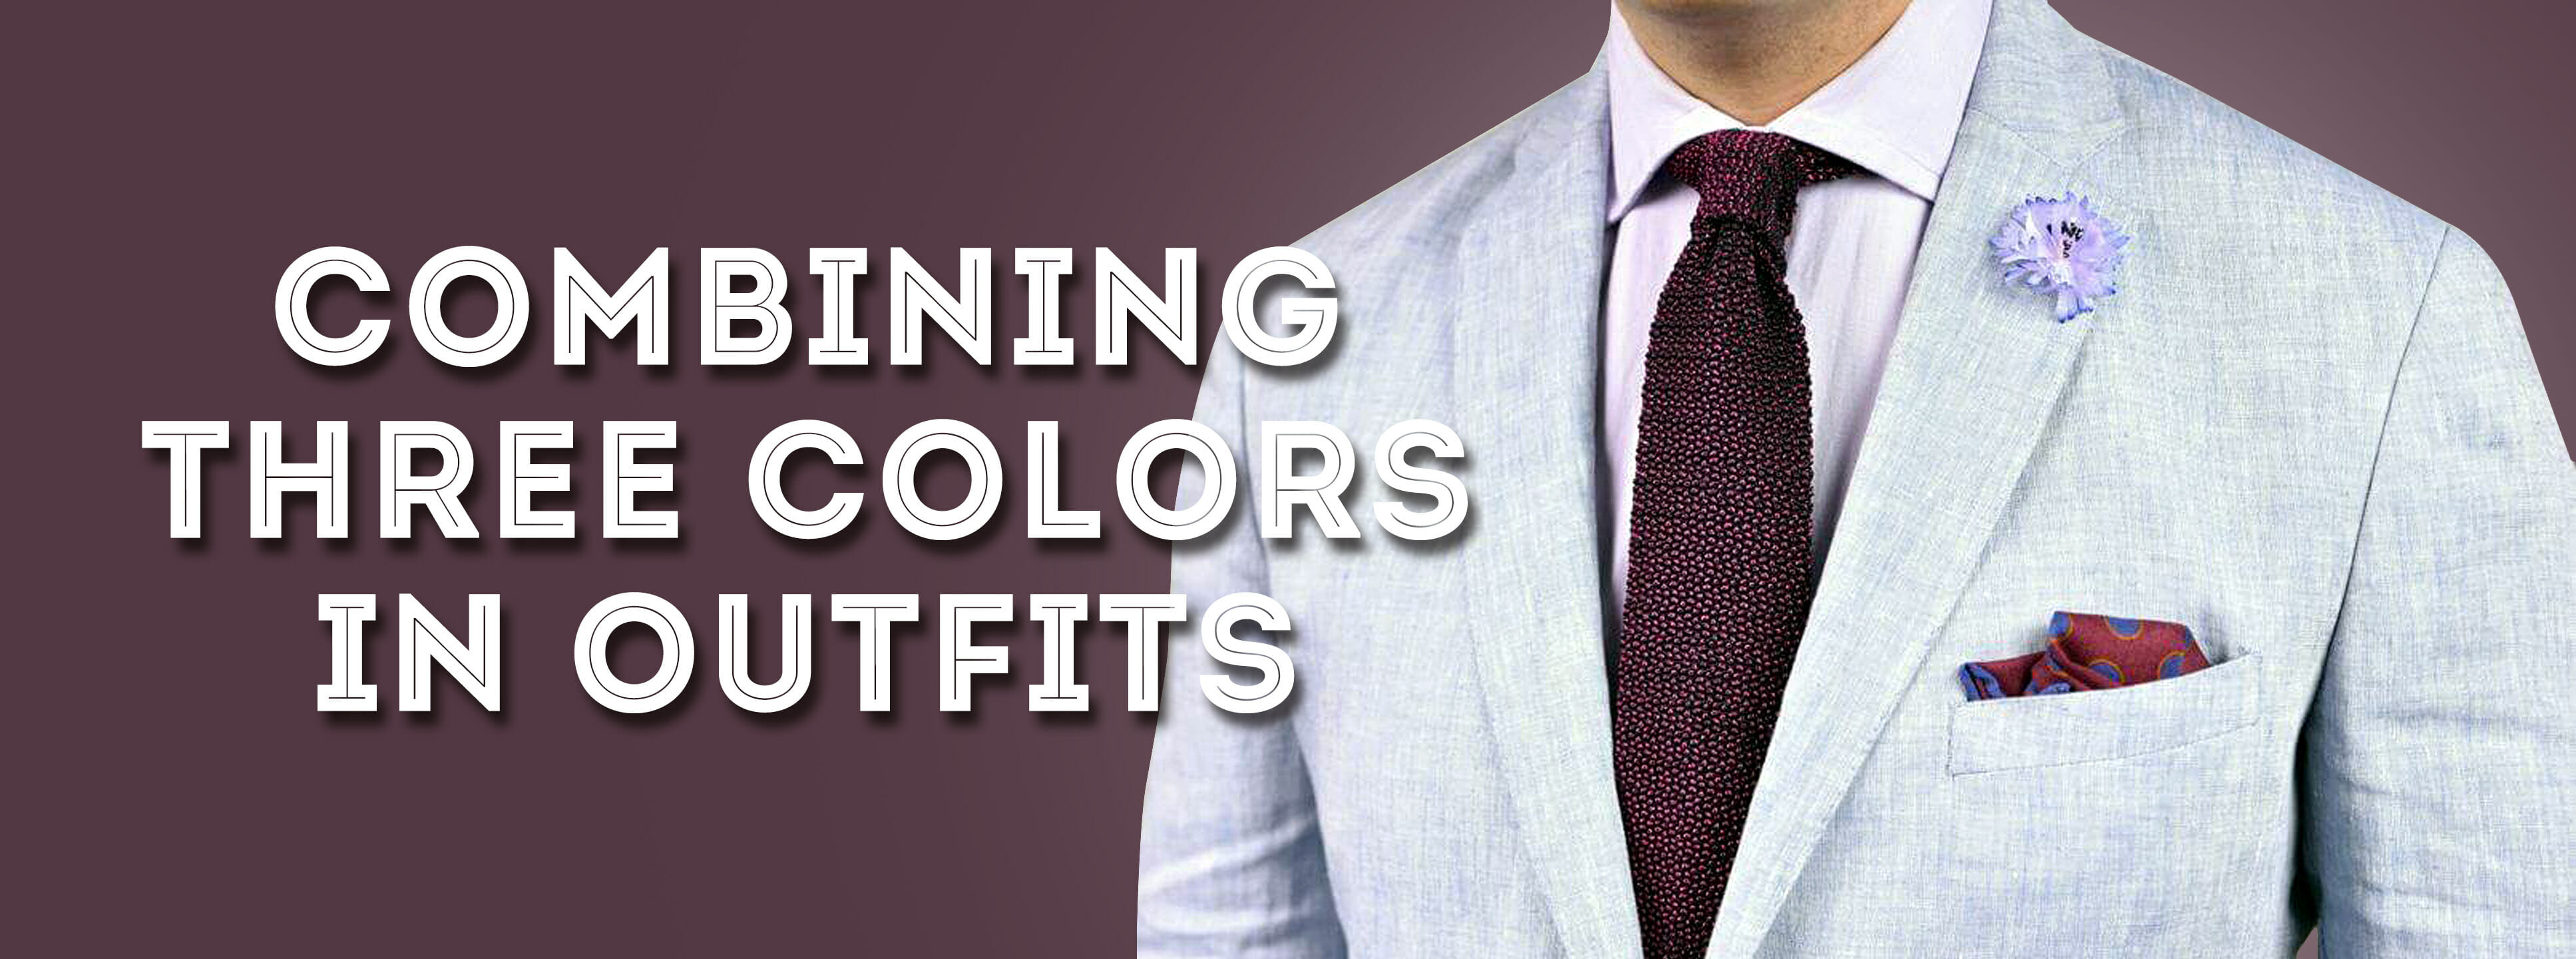 9f4af0129b68 Using Three or More Colors for Sophisticated Men's Style ...